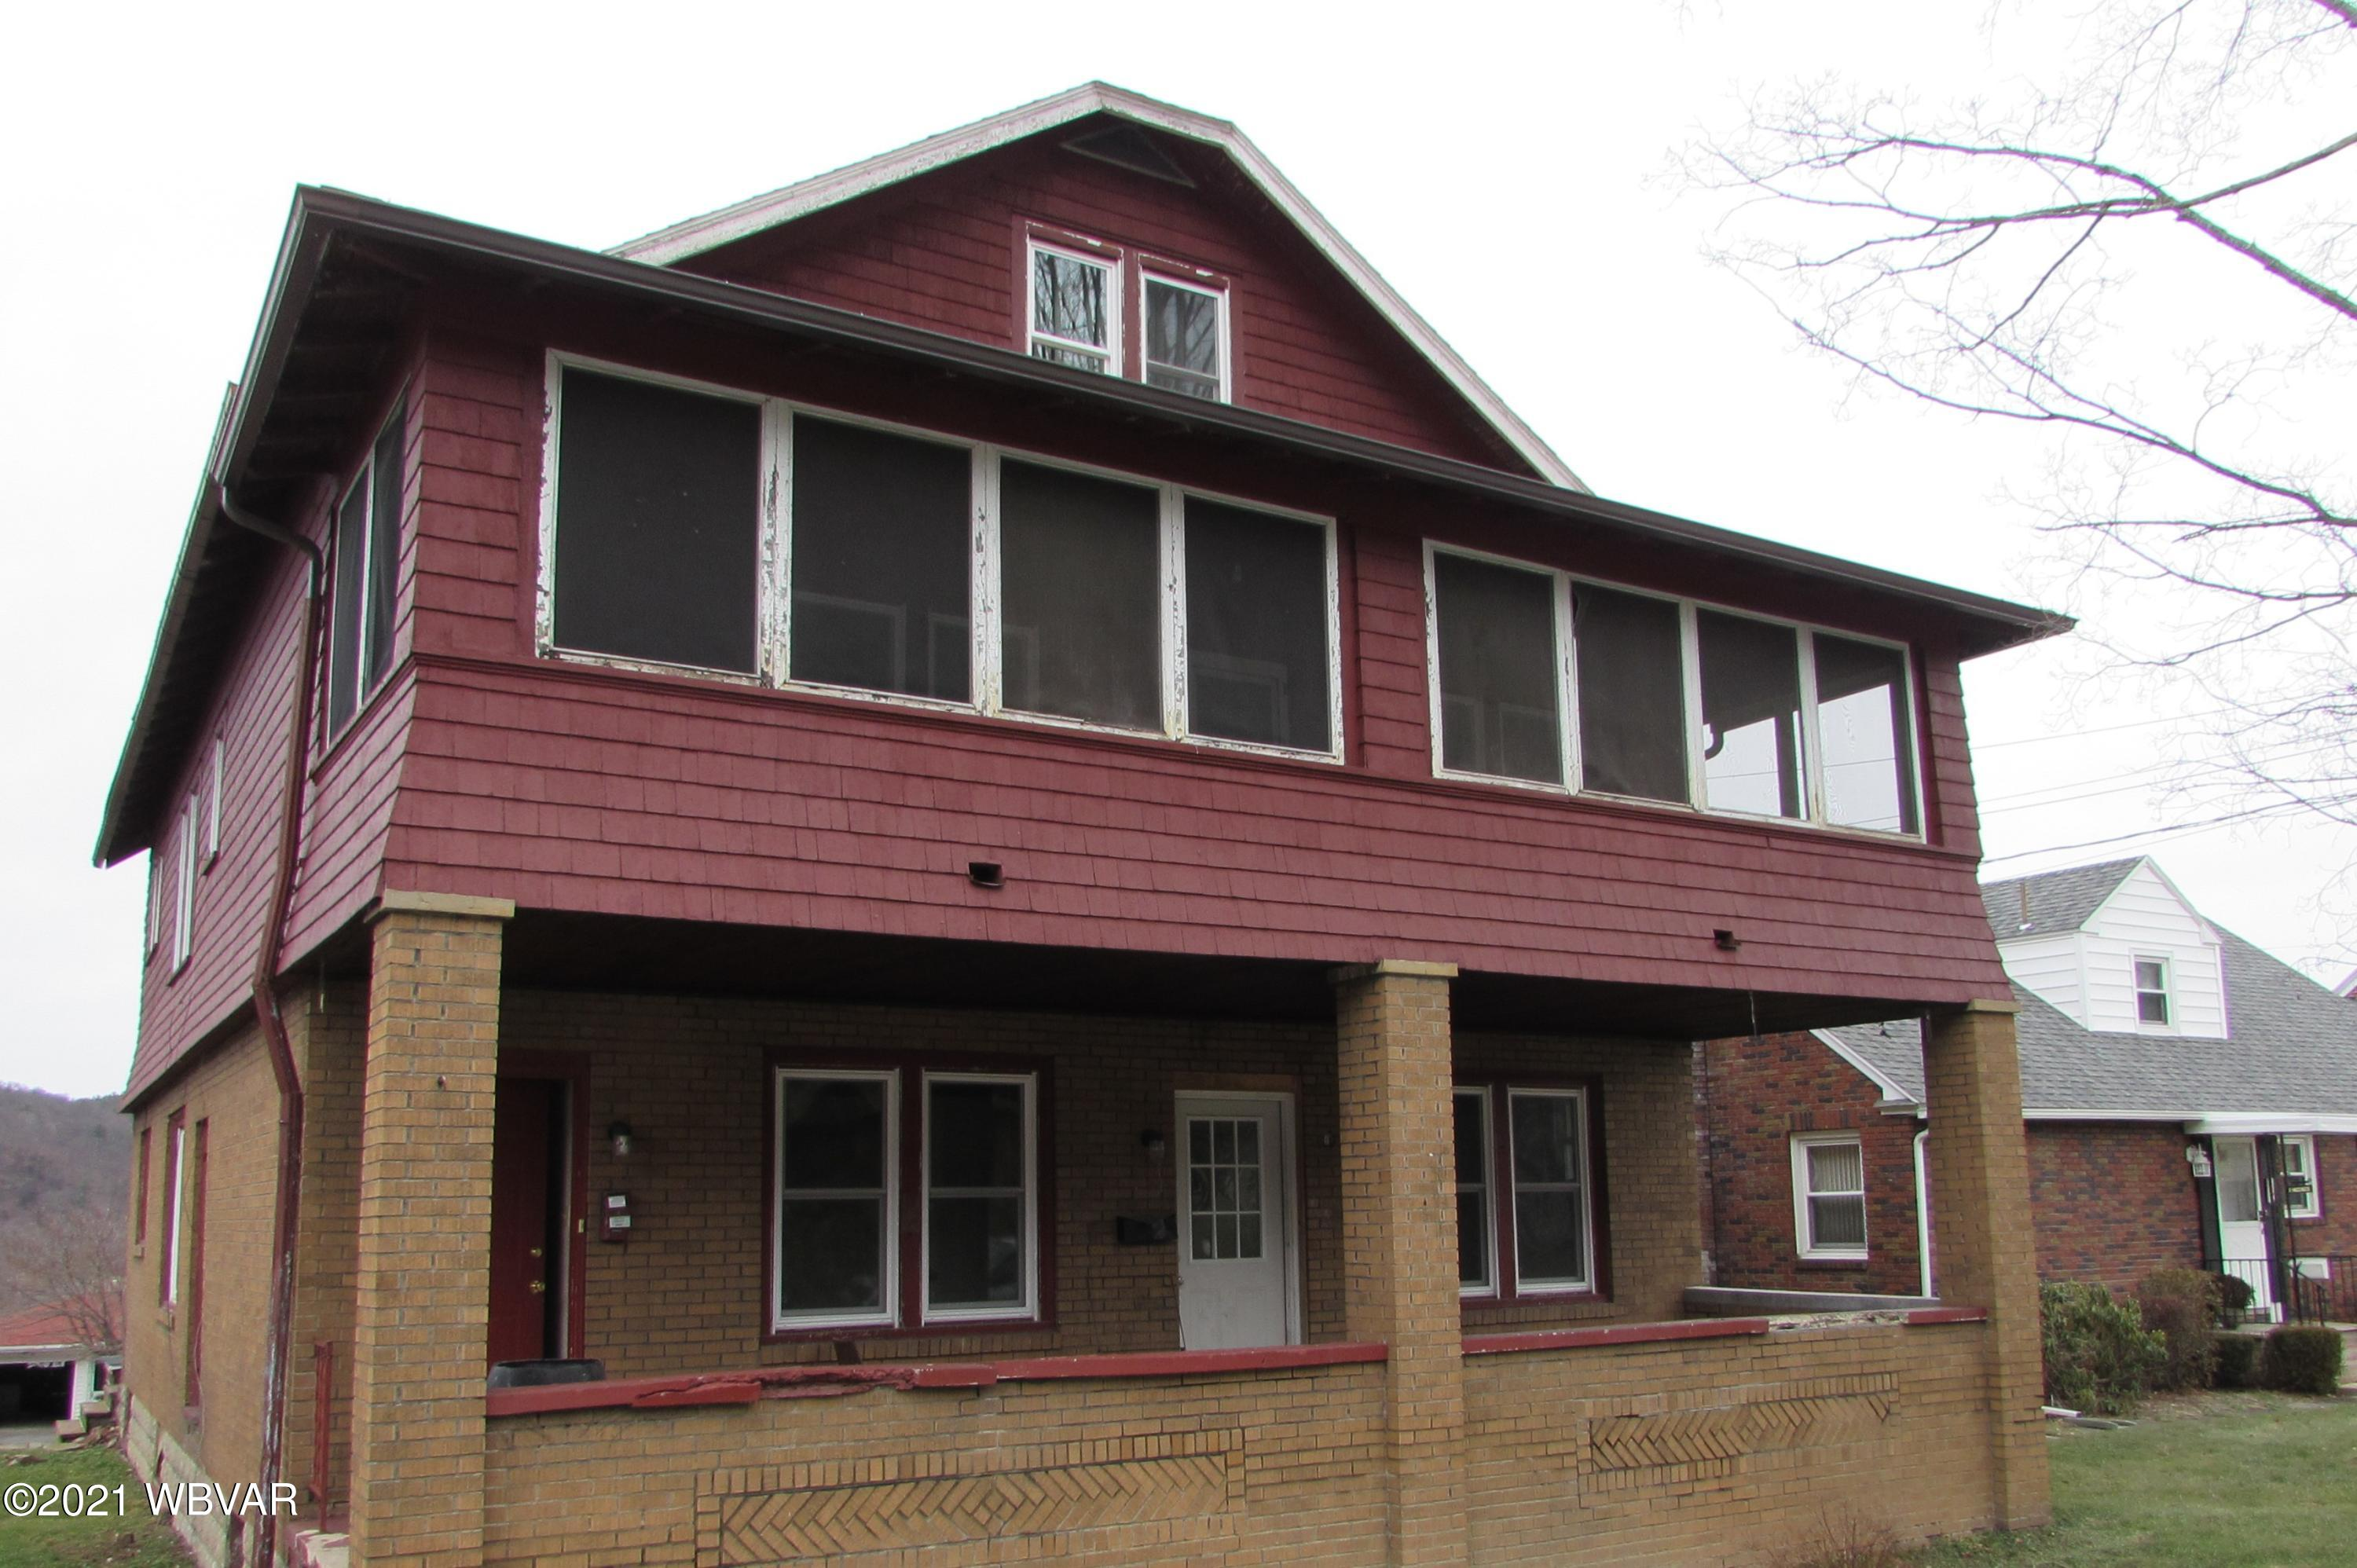 248-250 SUSQUEHANNA AVENUE, Lock Haven, PA 17745, ,Multi-units,For sale,SUSQUEHANNA,WB-92234